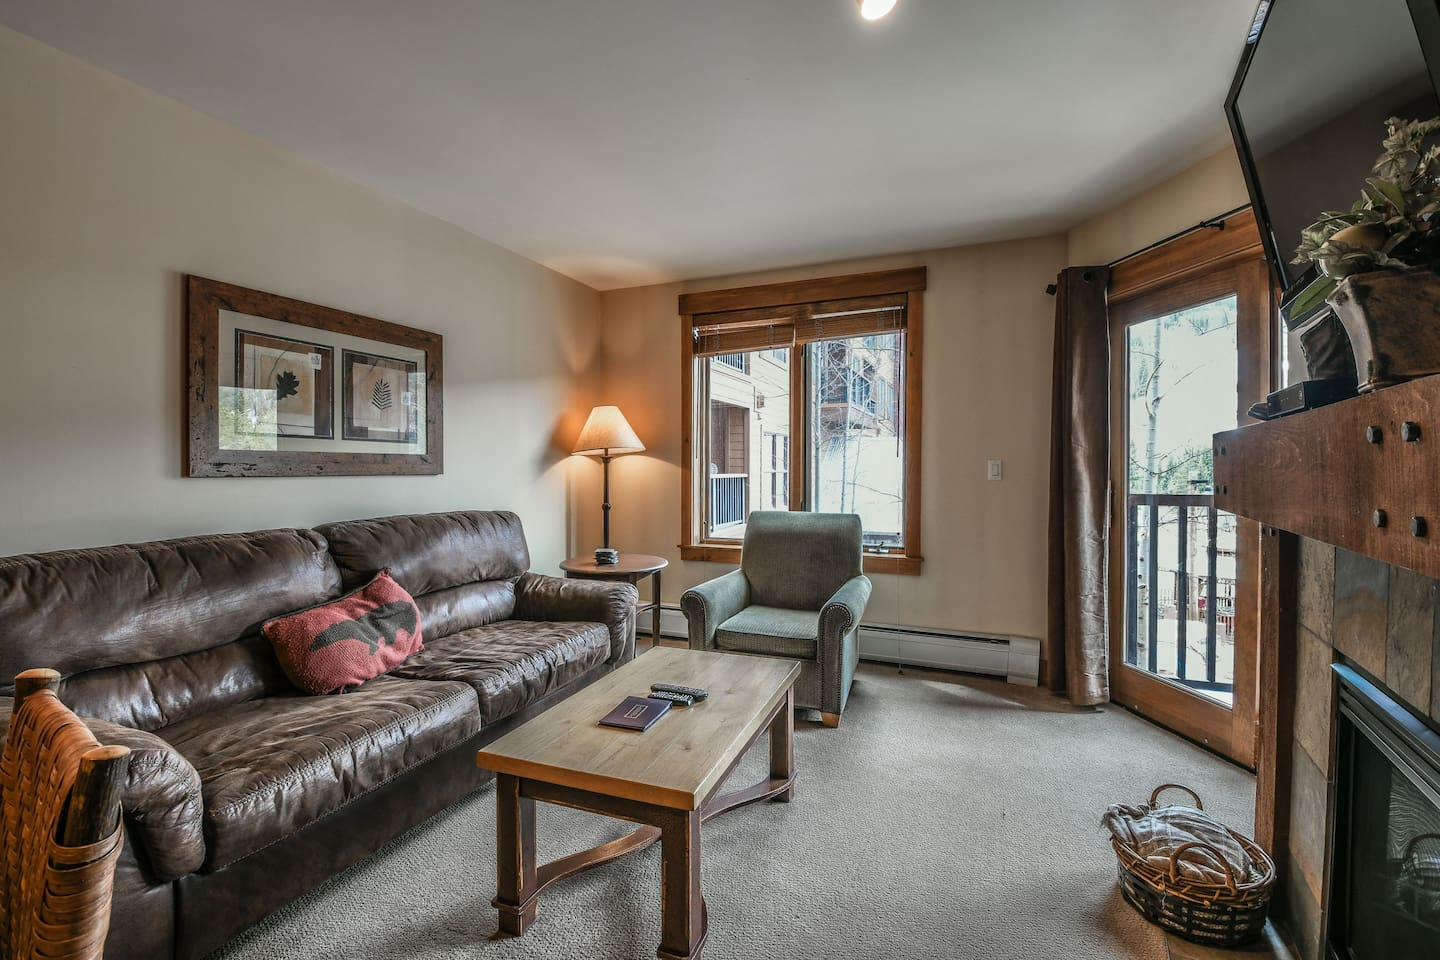 Living room with upper level balcony access